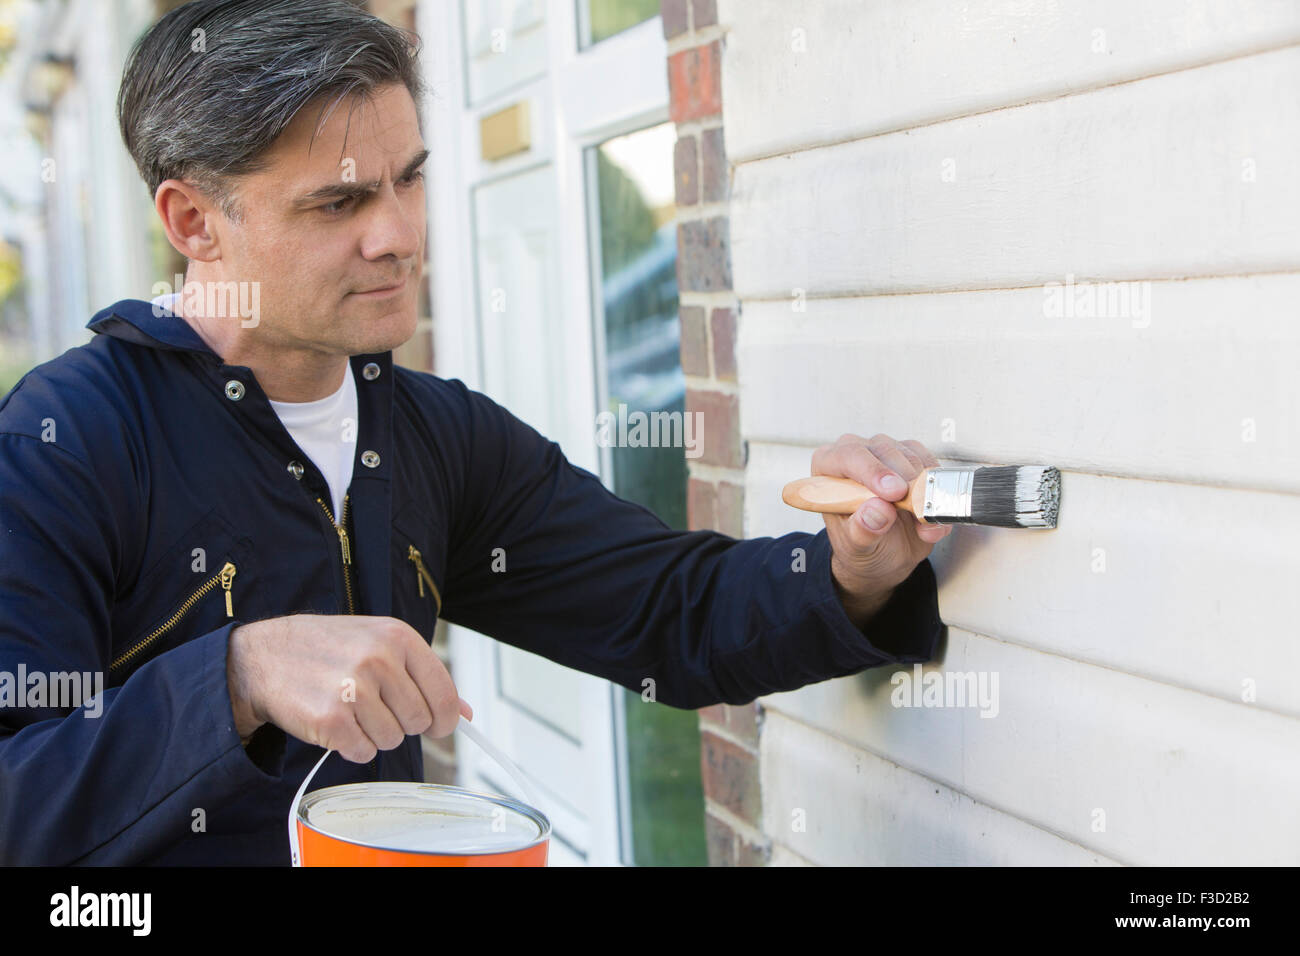 Man Holding Brush And Tin Painting Outside Of House - Stock Image